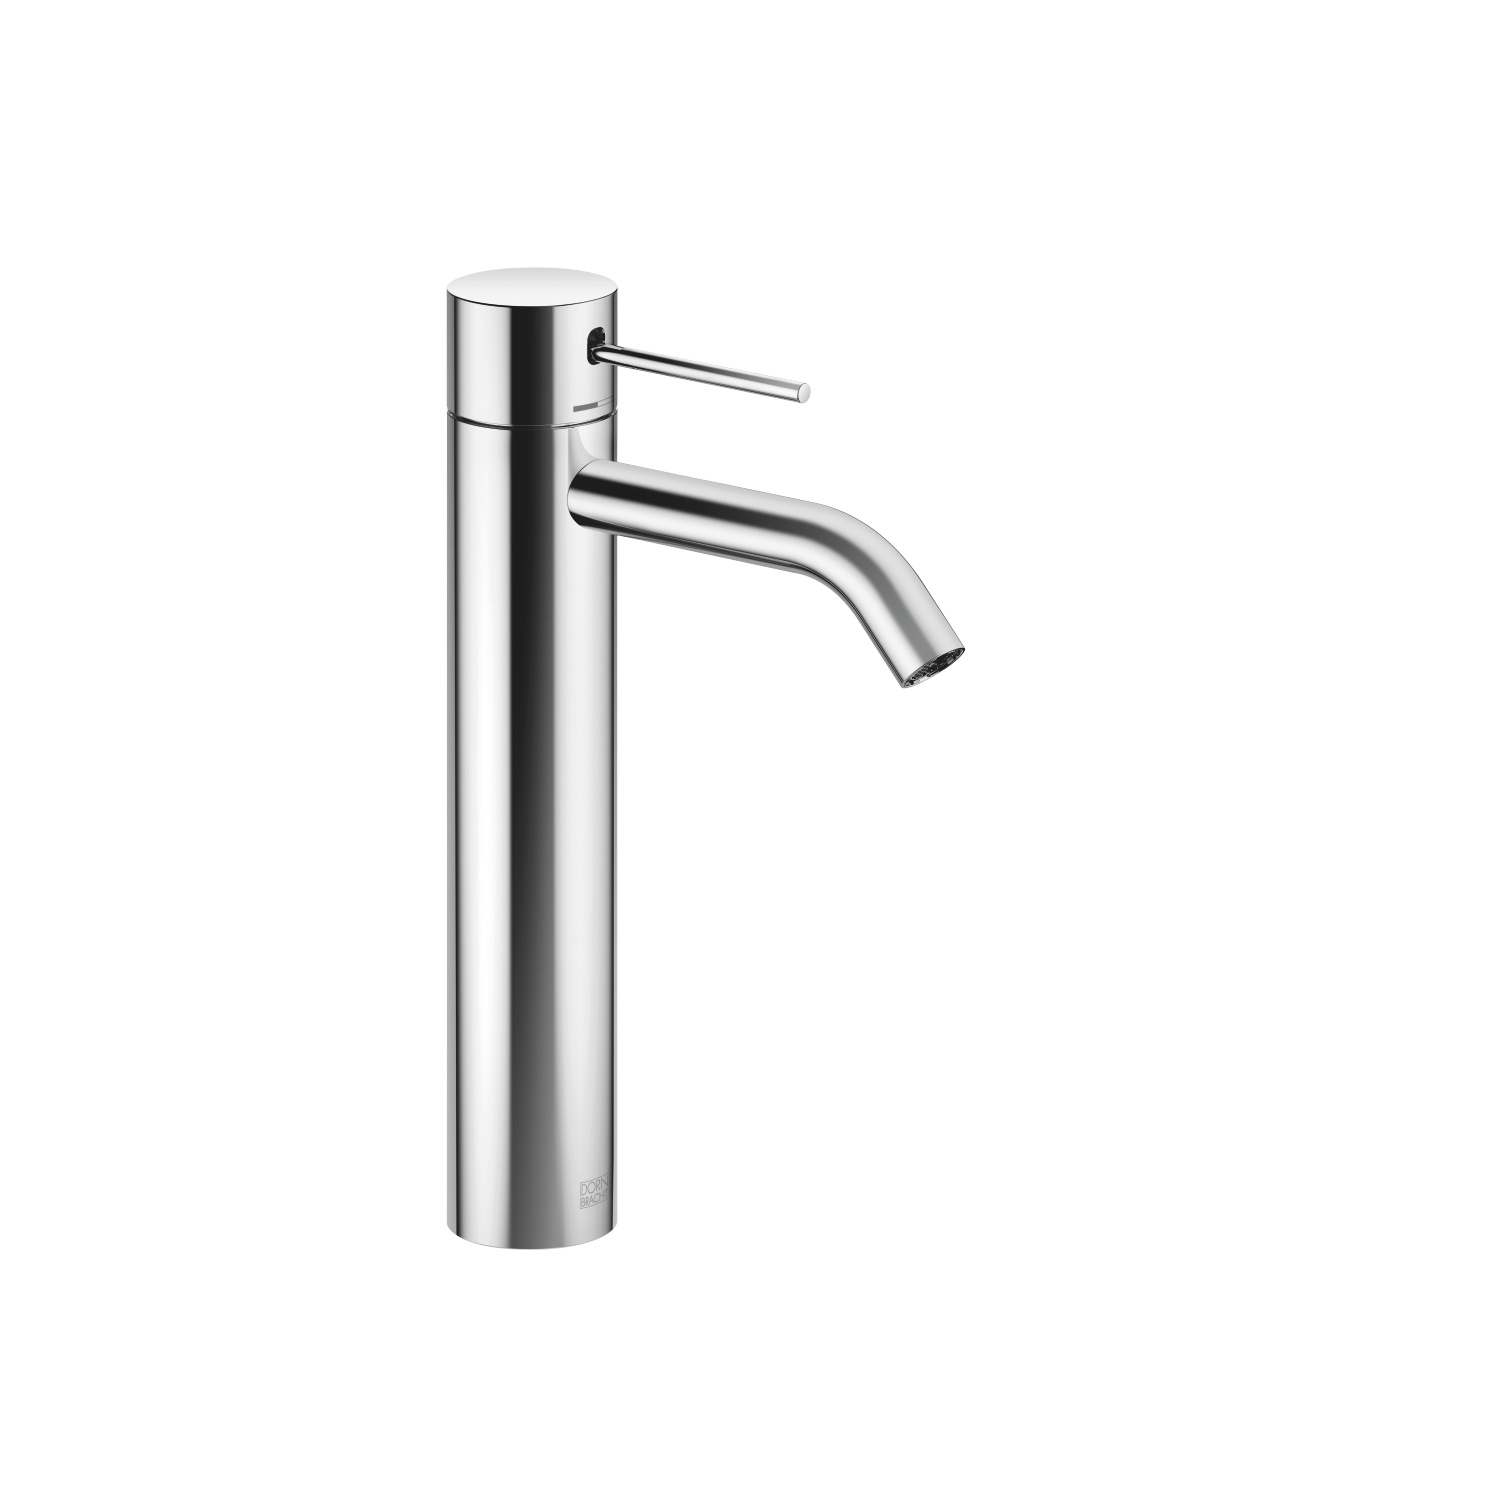 META SLIM Single-lever lavatory mixer with extended shank without drain - polished chrome